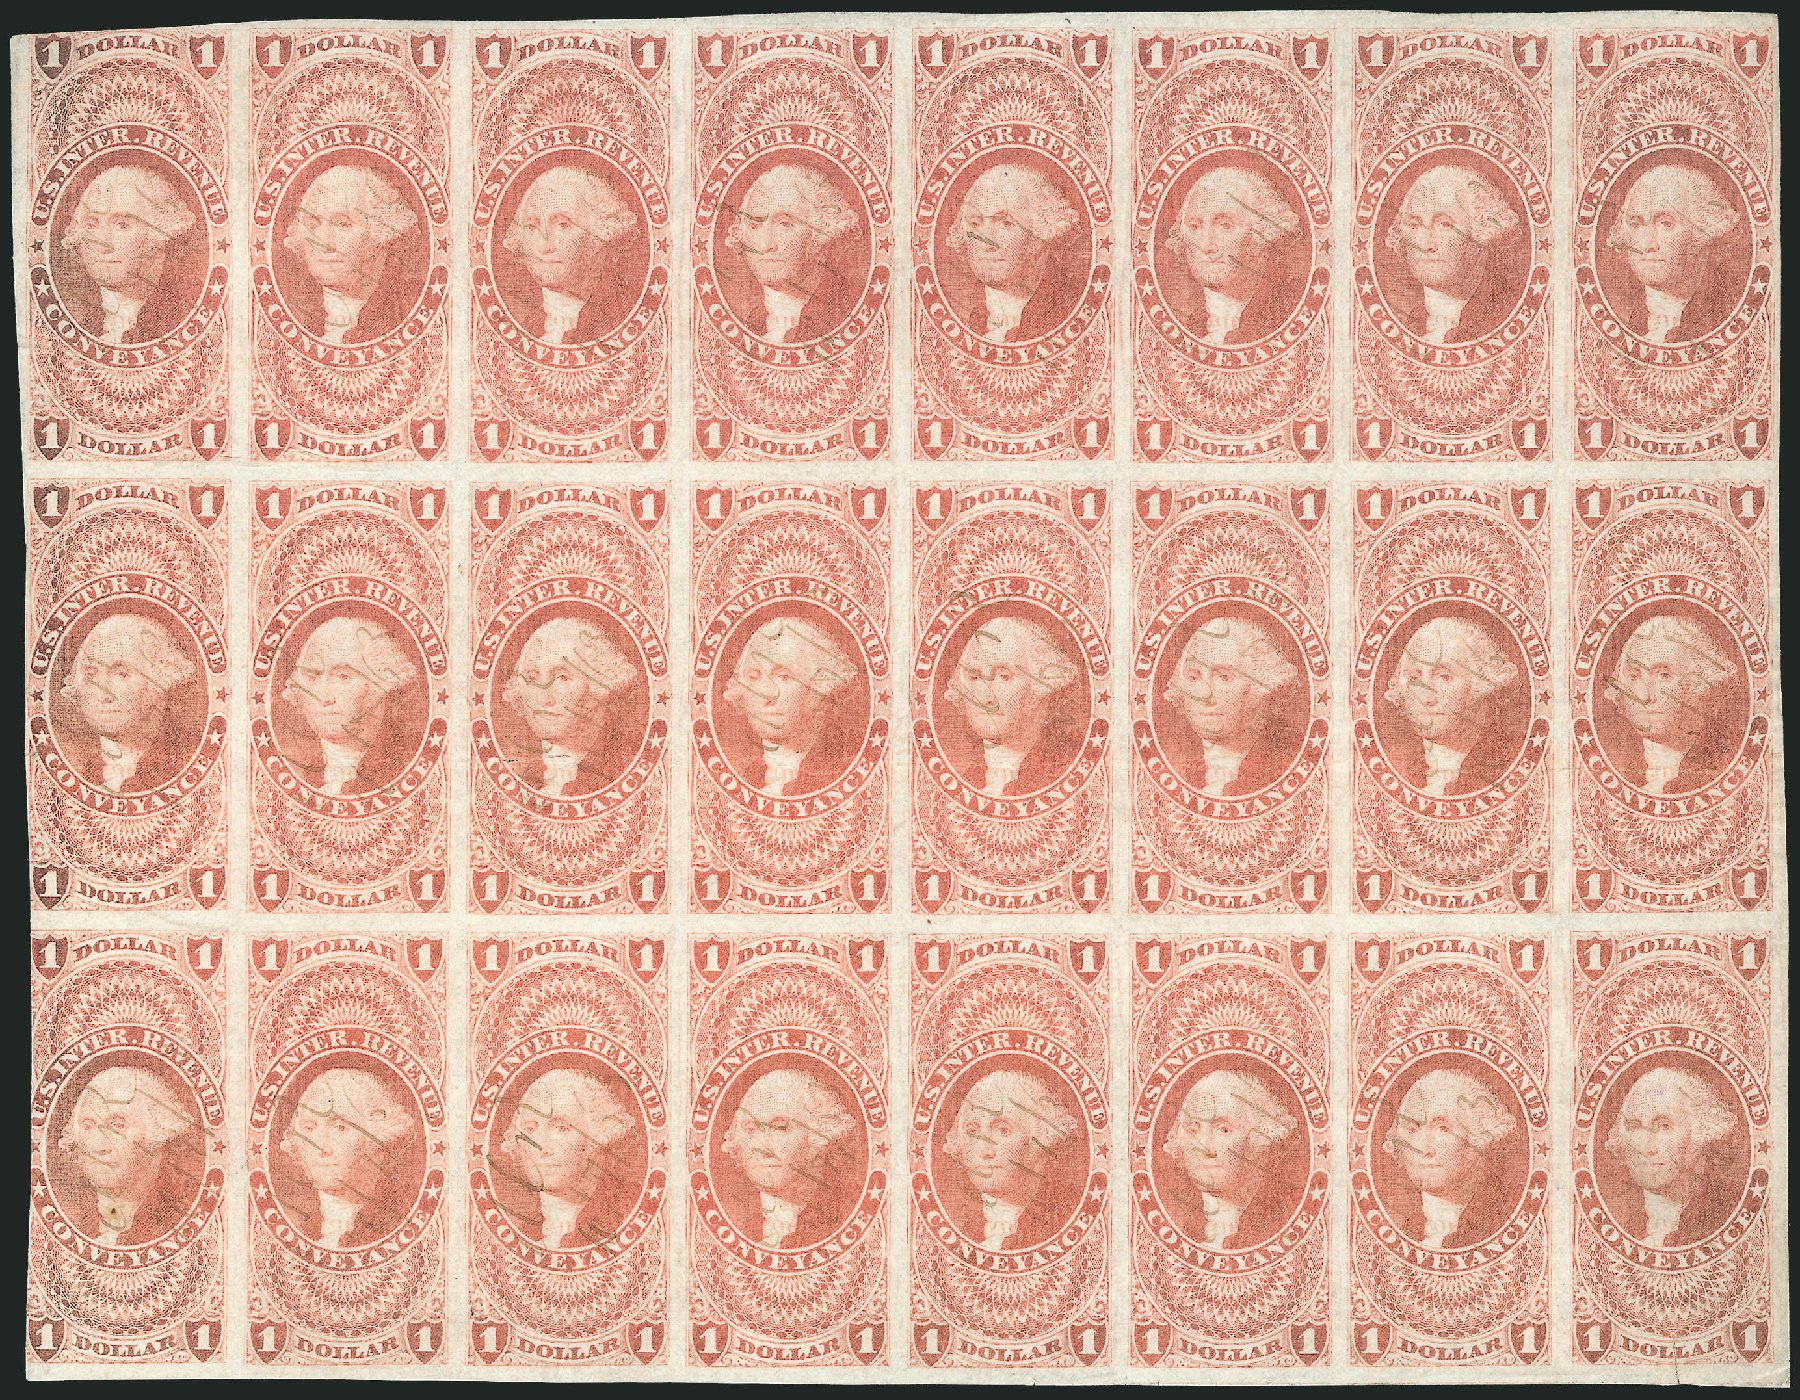 Costs of US Stamps Scott Catalogue #R66 - US$1.00 1862 Revenue Conveyance. Robert Siegel Auction Galleries, Dec 2014, Sale 1089, Lot 351